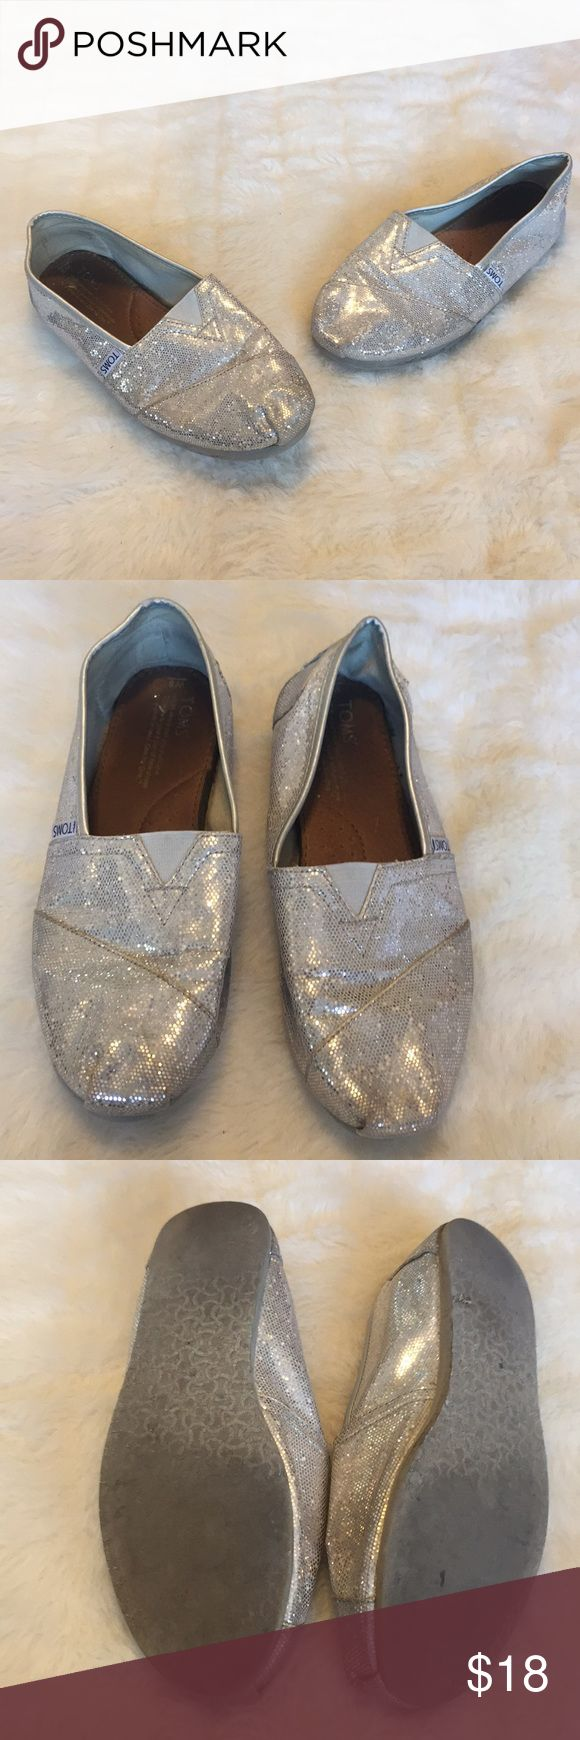 Sparkly Silver TOMS Espadrilles 8 Adorable Sparkly Silver TOMS Espadrilles. Size 8. Pre-worn, but still have a ton of life left in them. Super fun for spring & summer! Toms Shoes Espadrilles